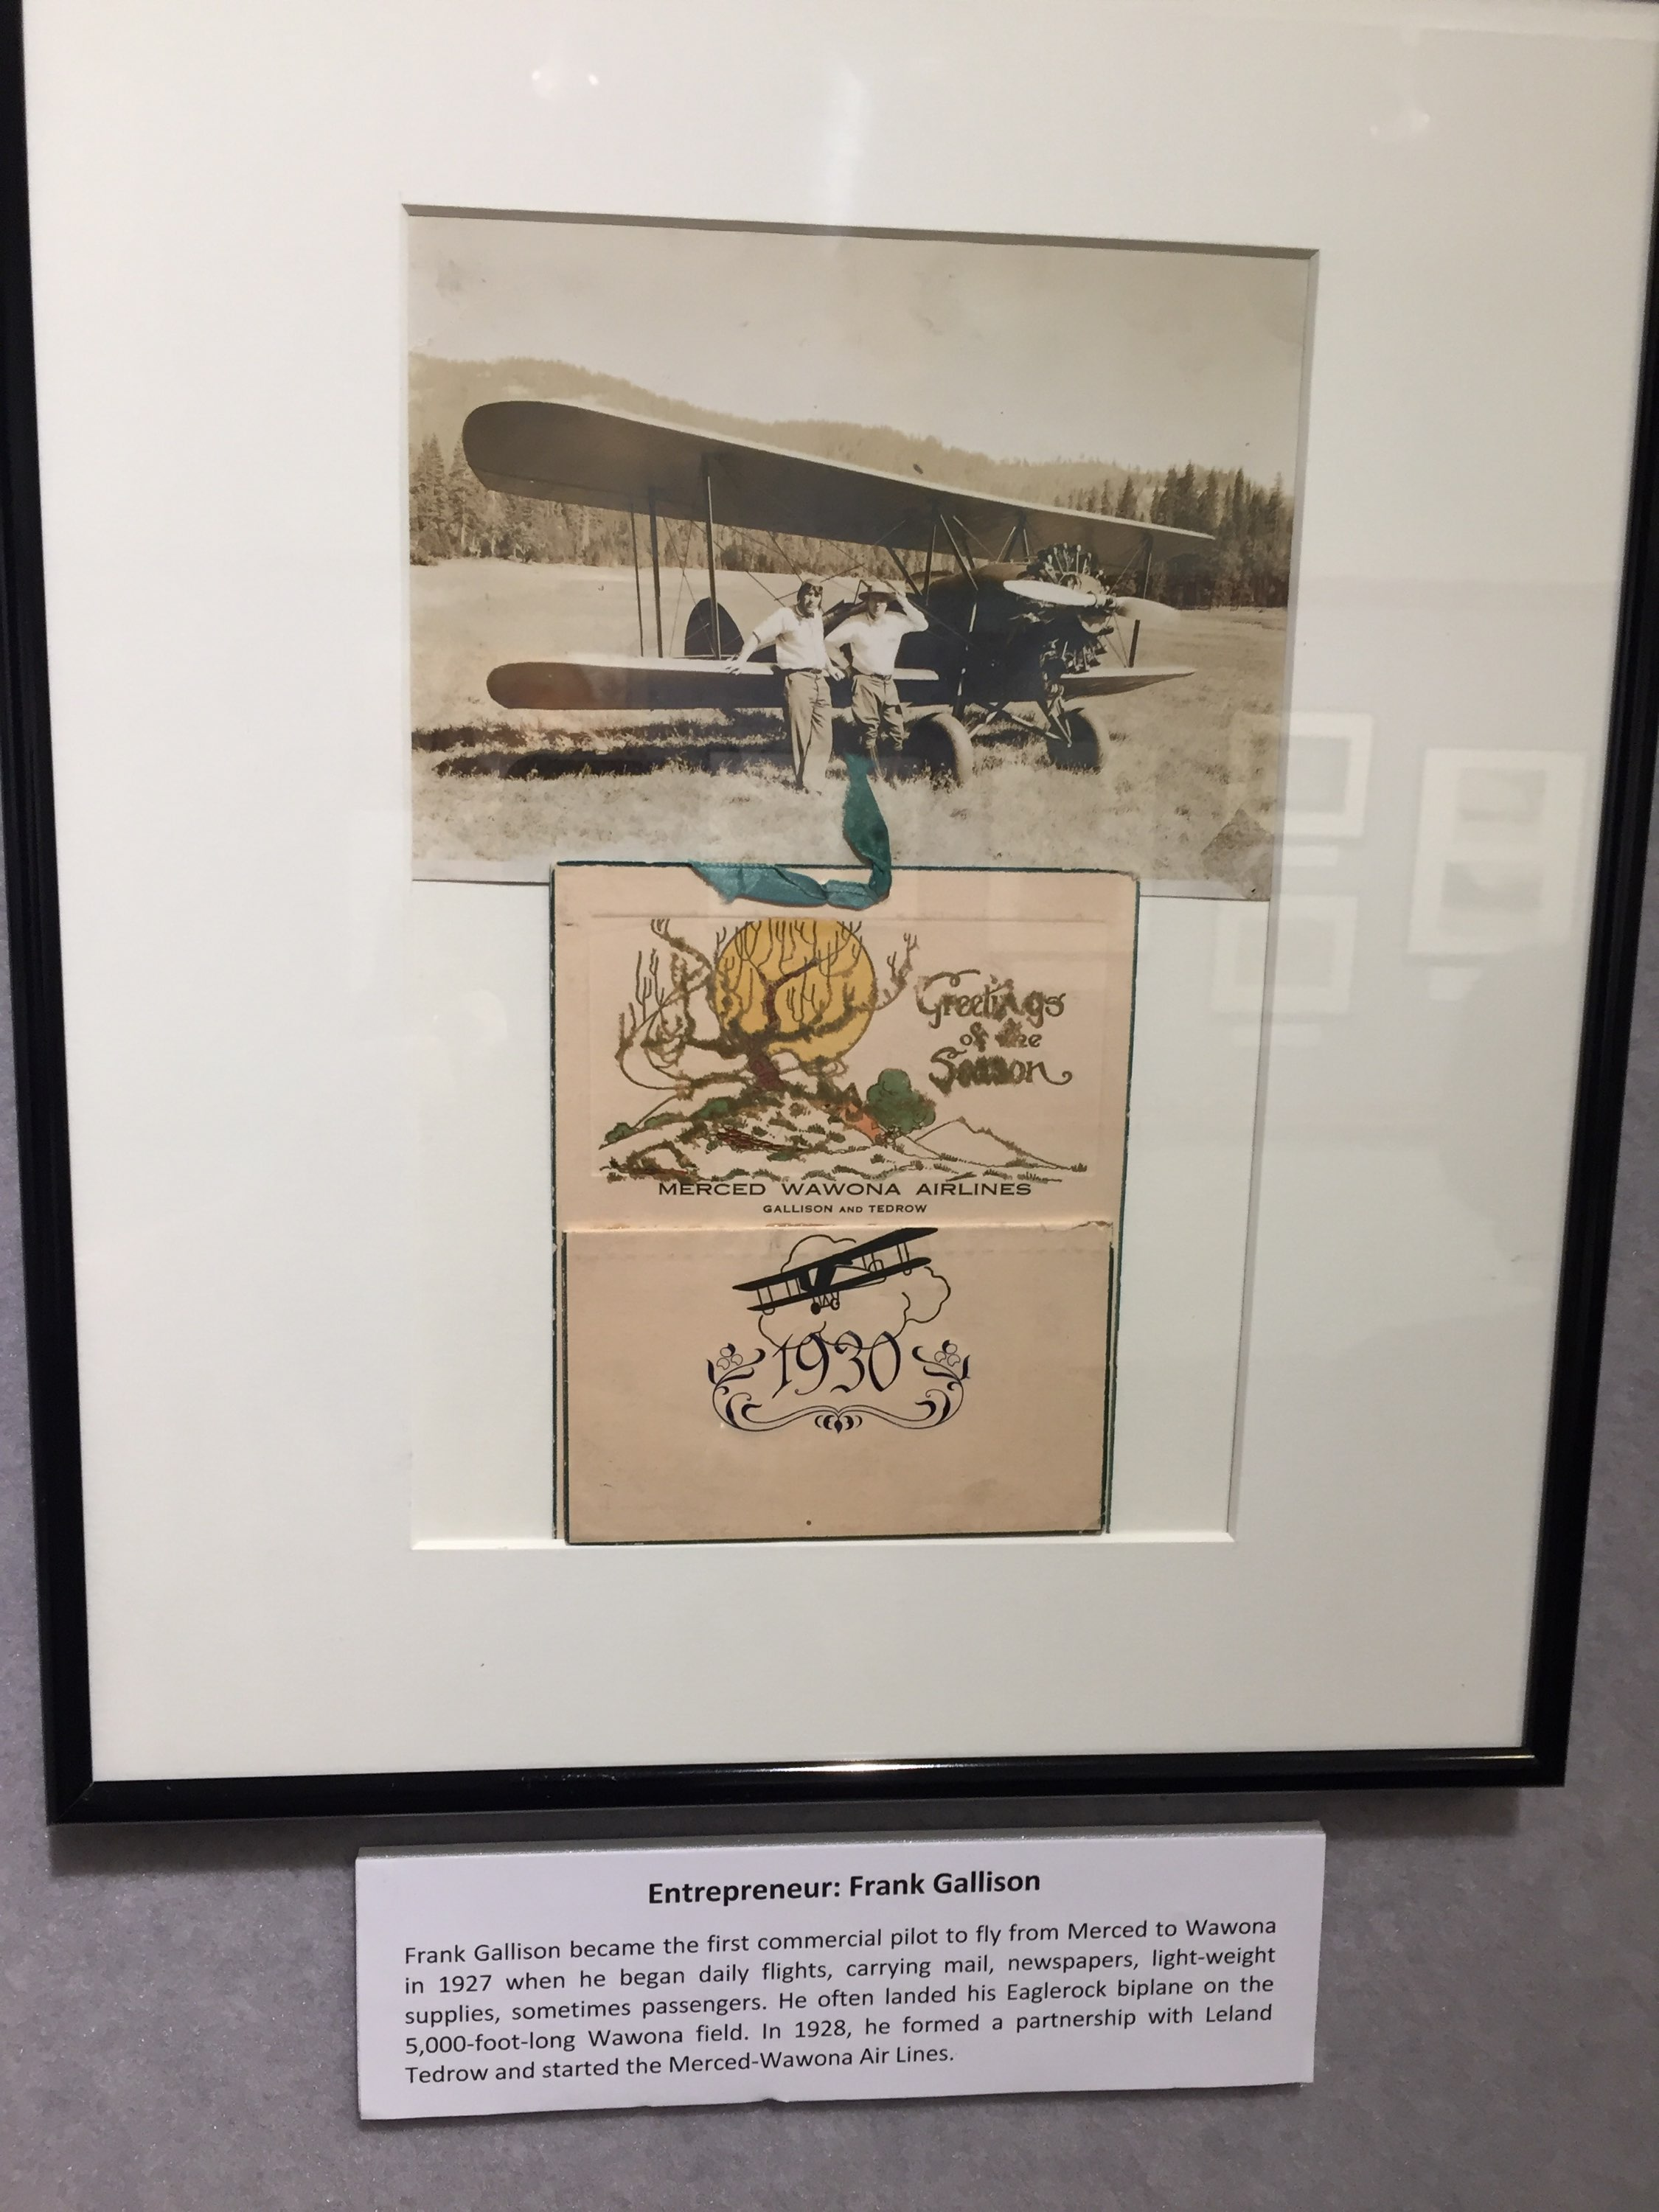 entrepreneur Frank Gallison started air service from Merced to Yosemite back in the 1920s. These pieces of memorabilia are on display at the Courthouse Museum